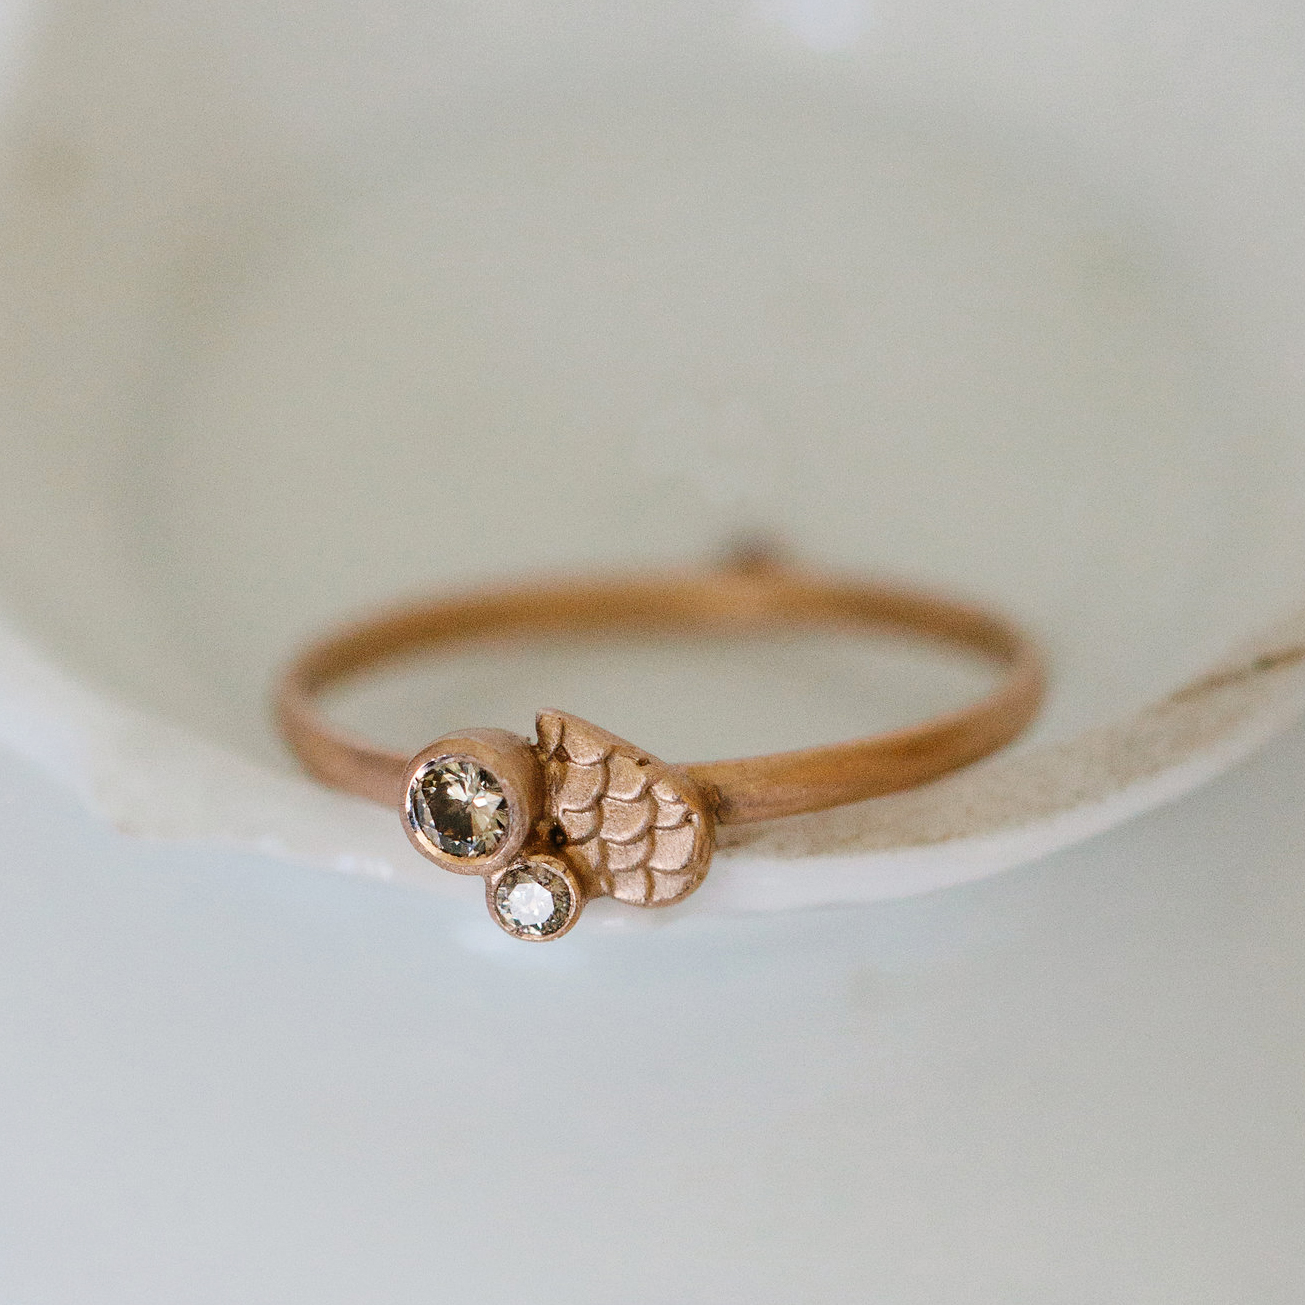 alison macleod 15 Catkin rain drop Ring with off-set diamonds main.jpg